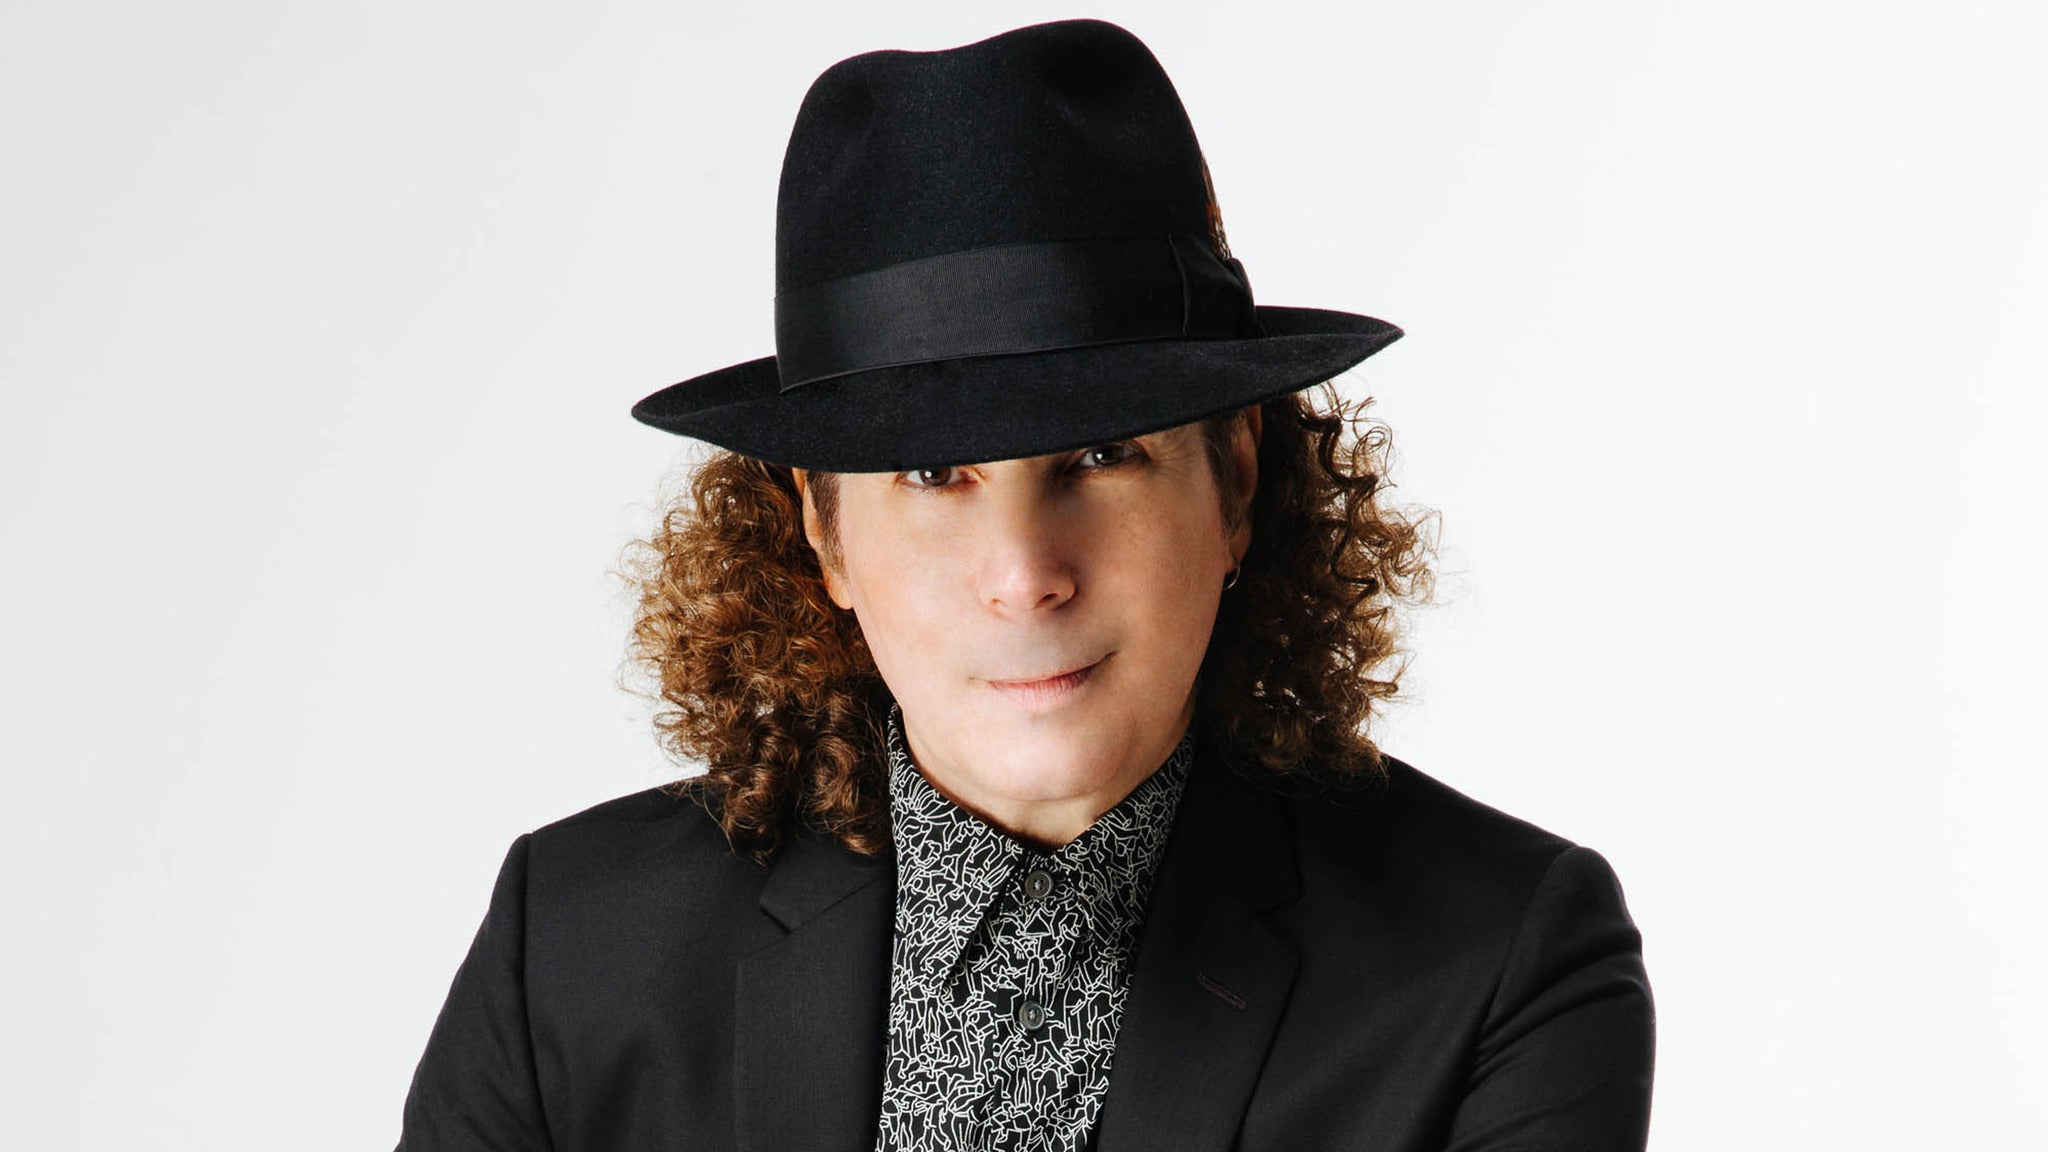 Boney James at King Performing Arts Center